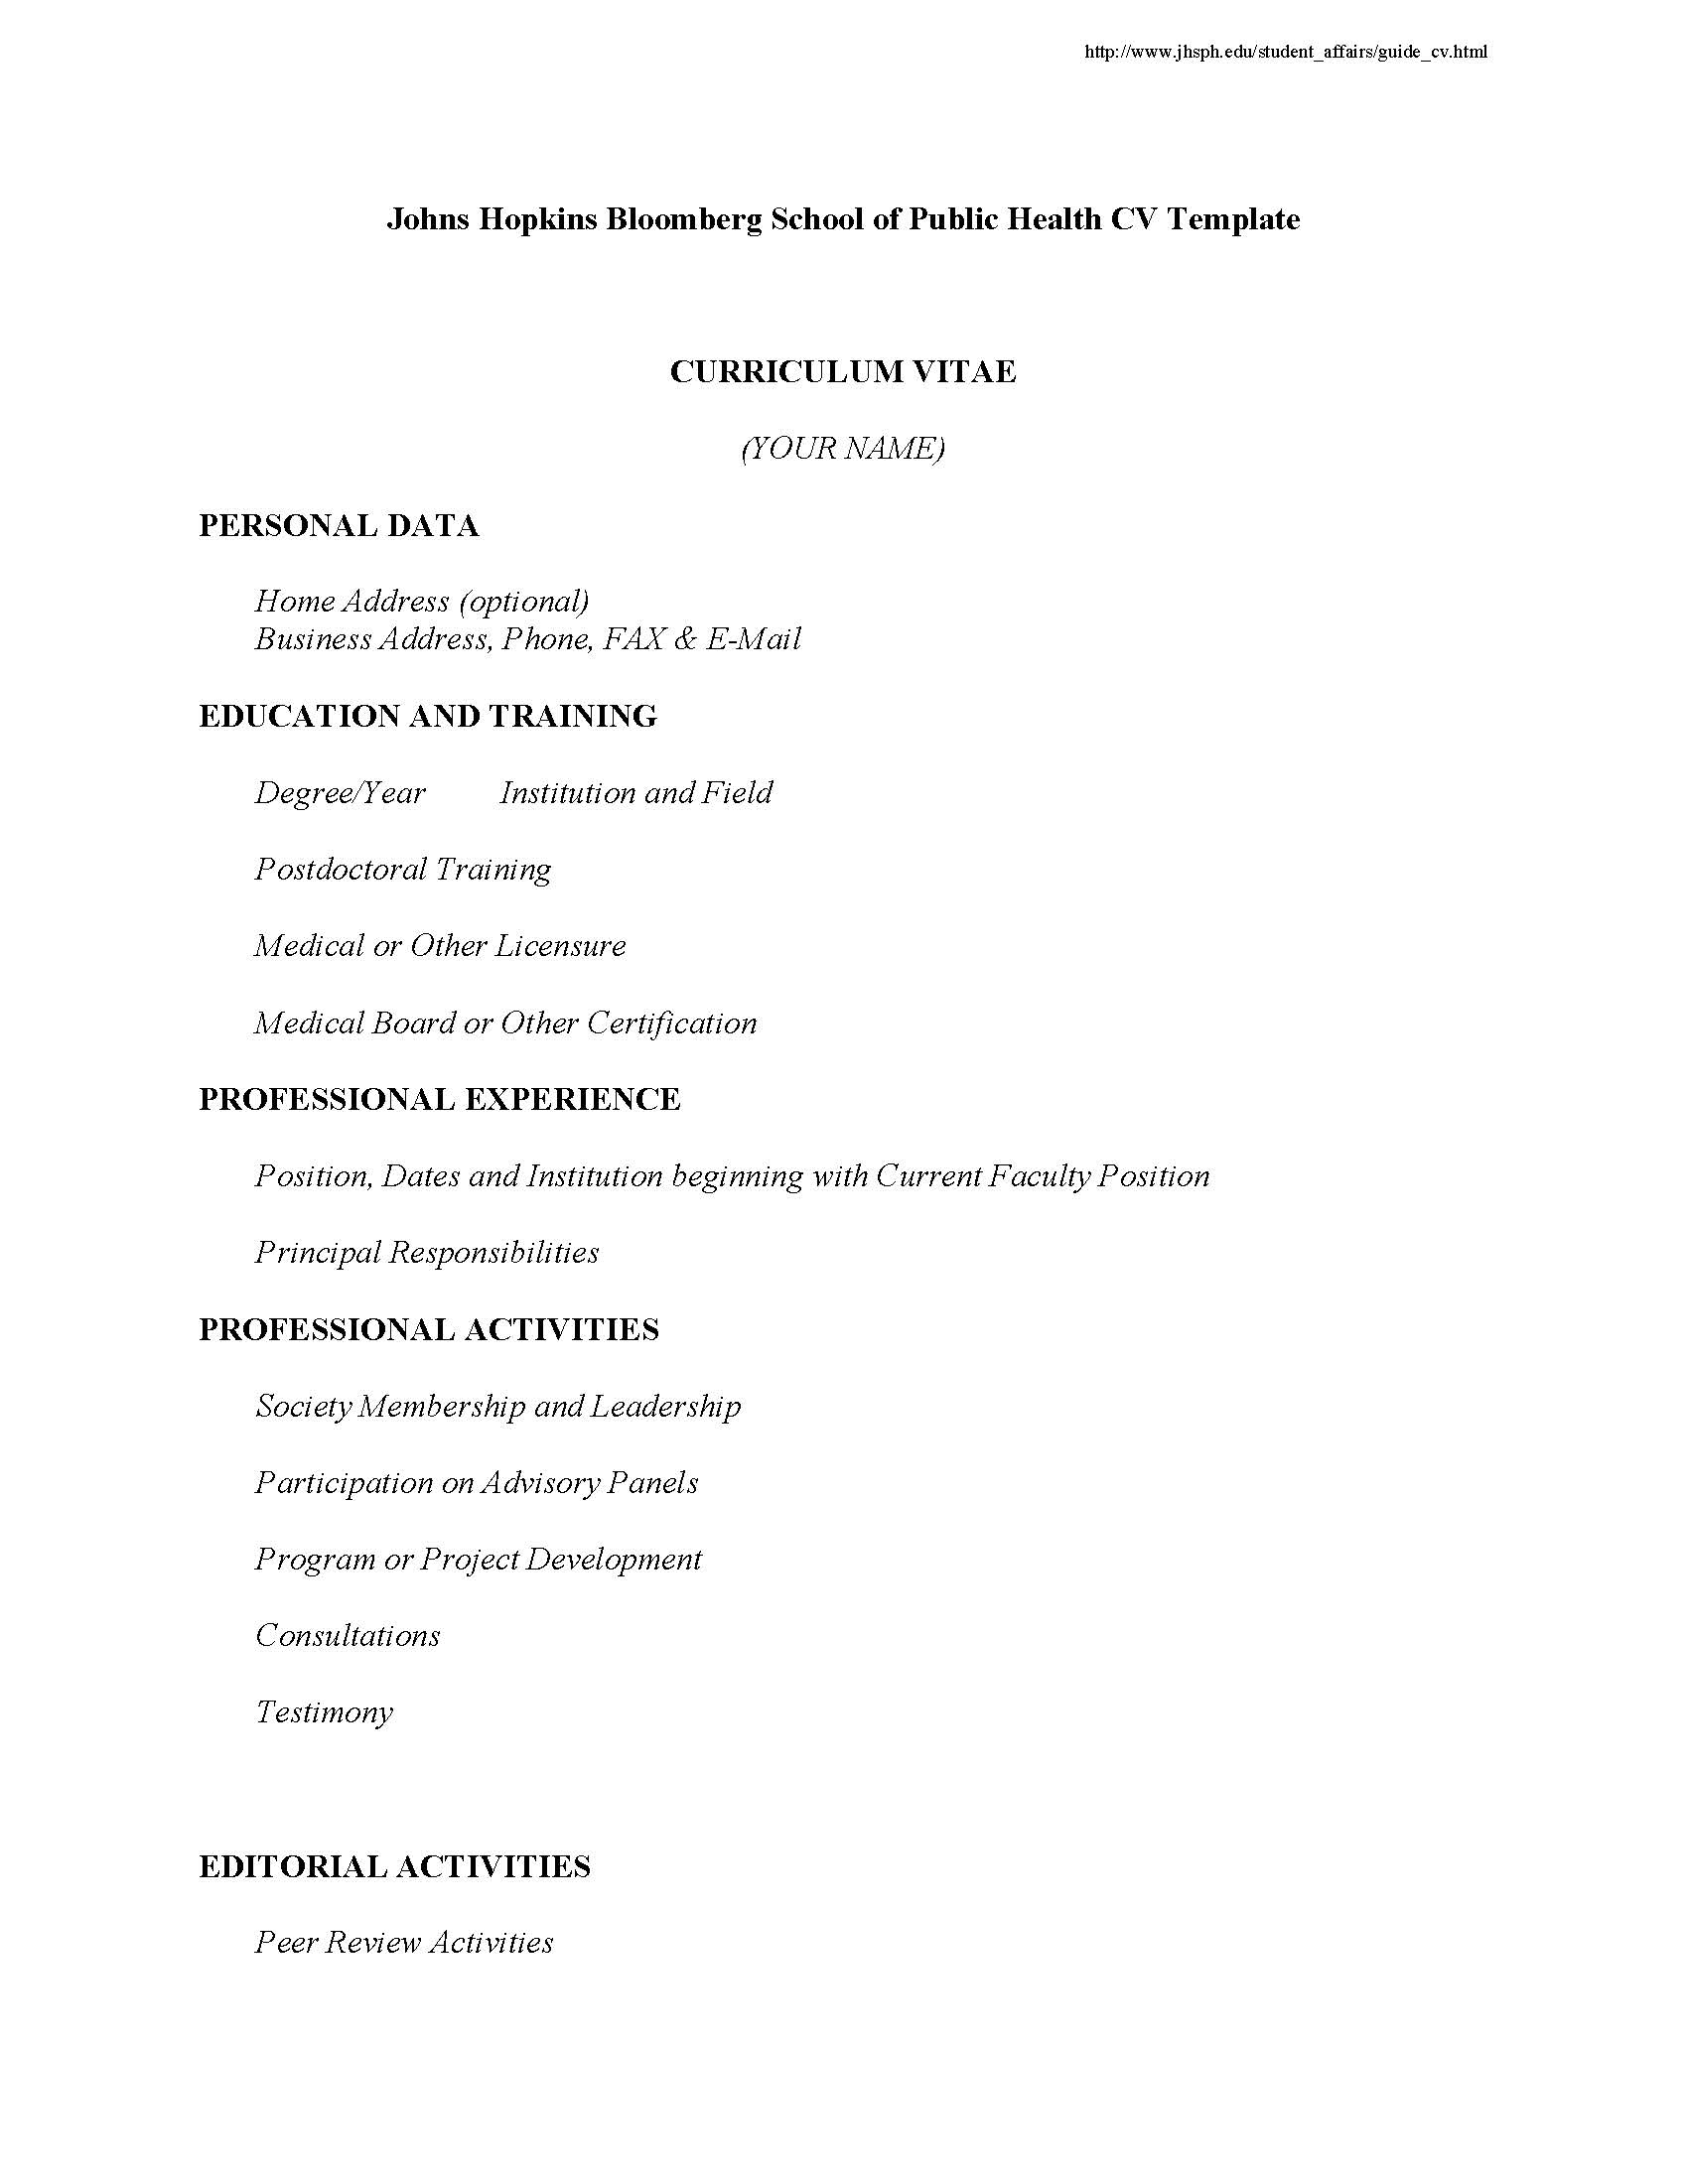 jhsph cv template - Sample Of Resume Format